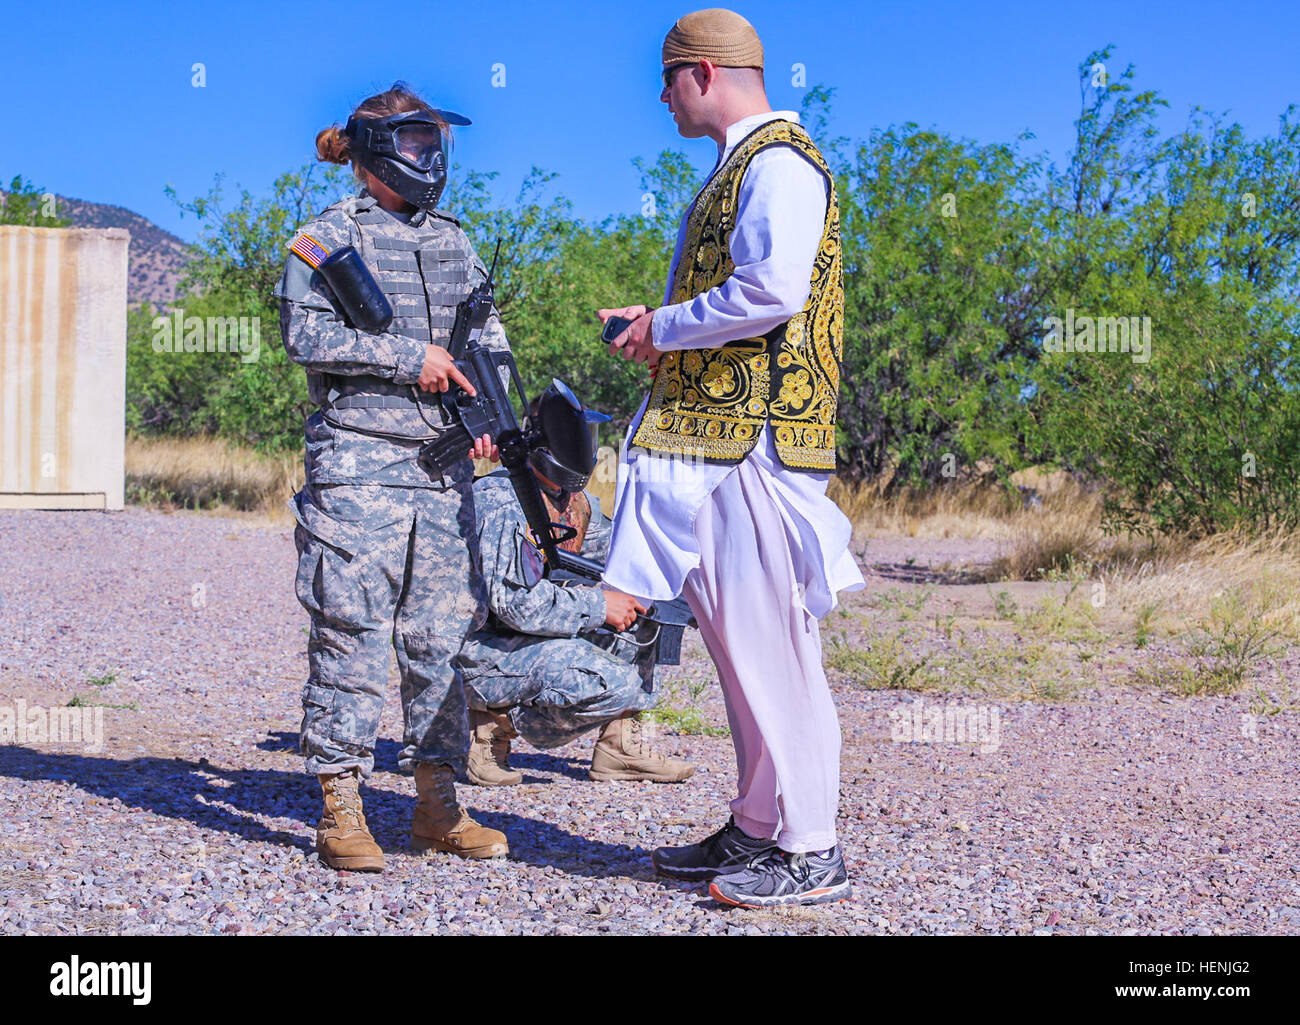 21st Signal Brigade High Resolution Stock Photography And Images Alamy